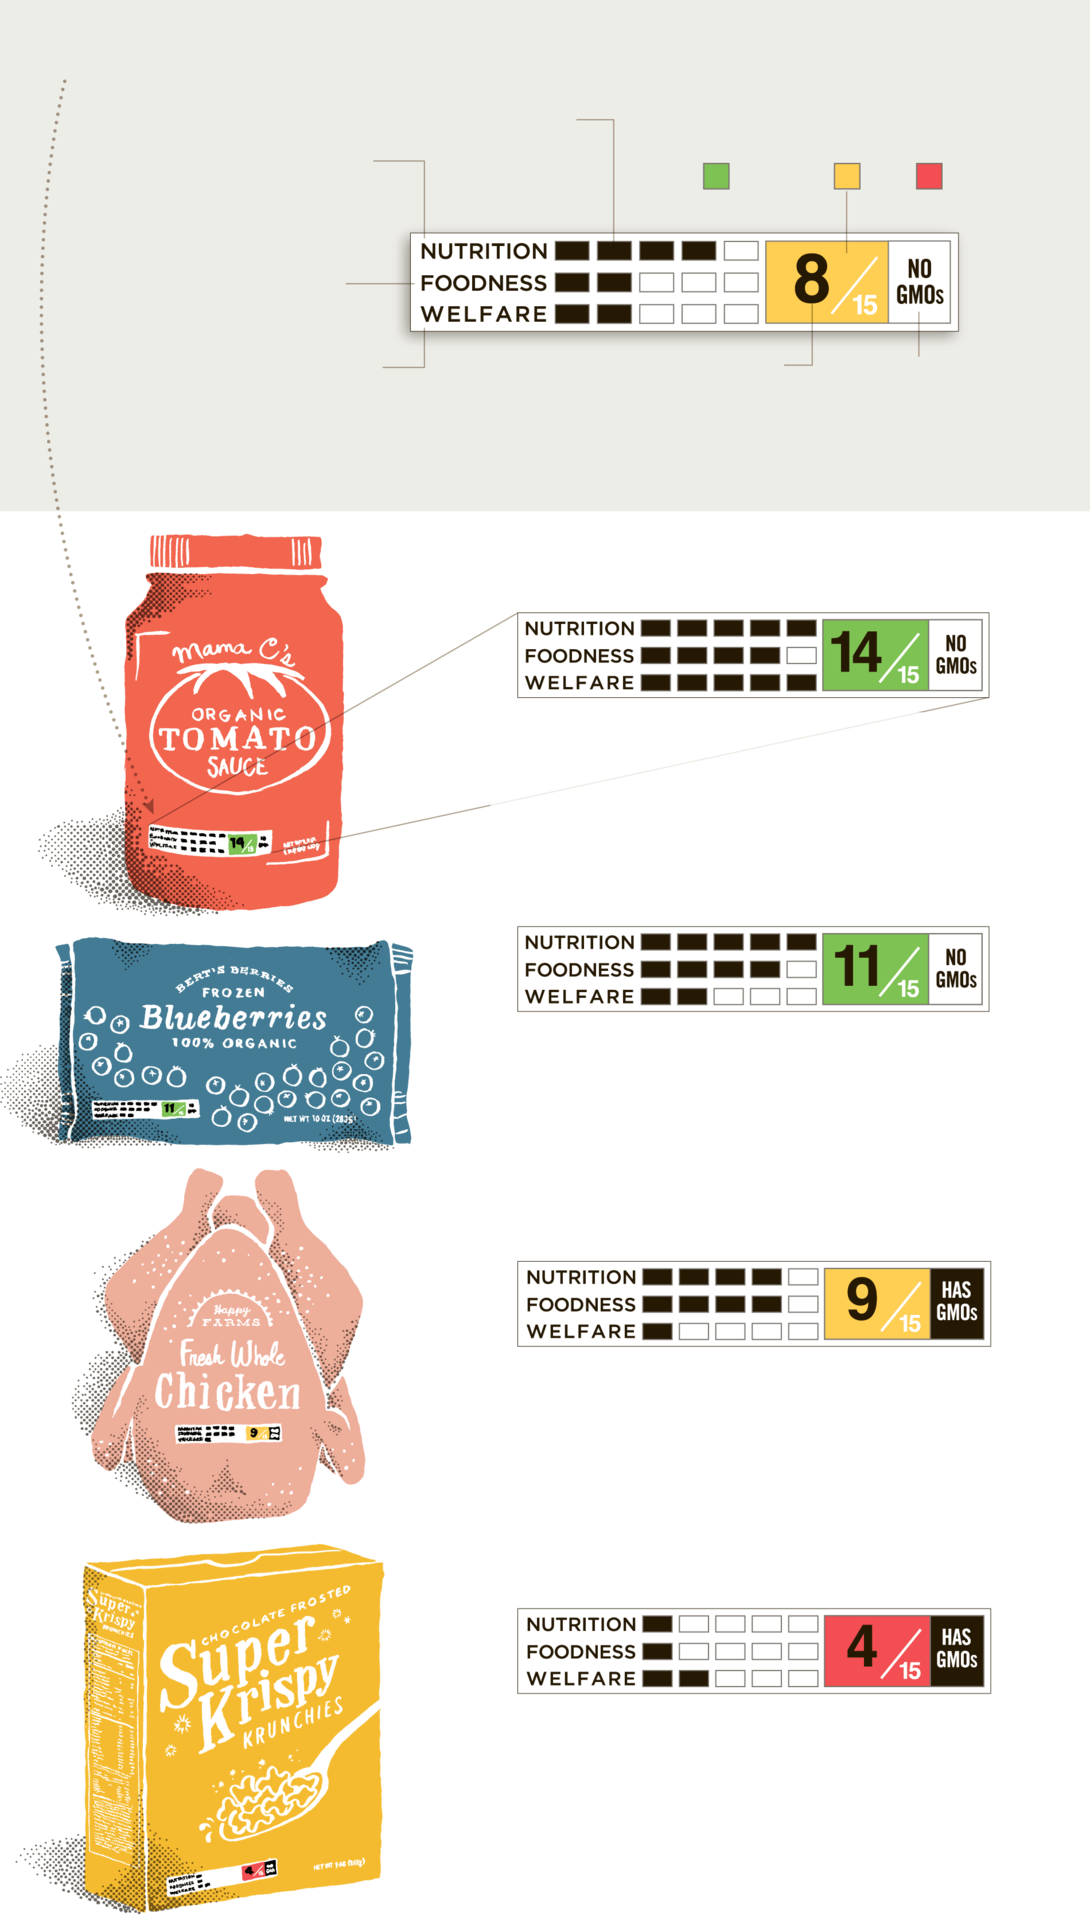 (via The Proposed Nutrition Label: A Quick Read, Out Front - Graphic - NYTimes.com)